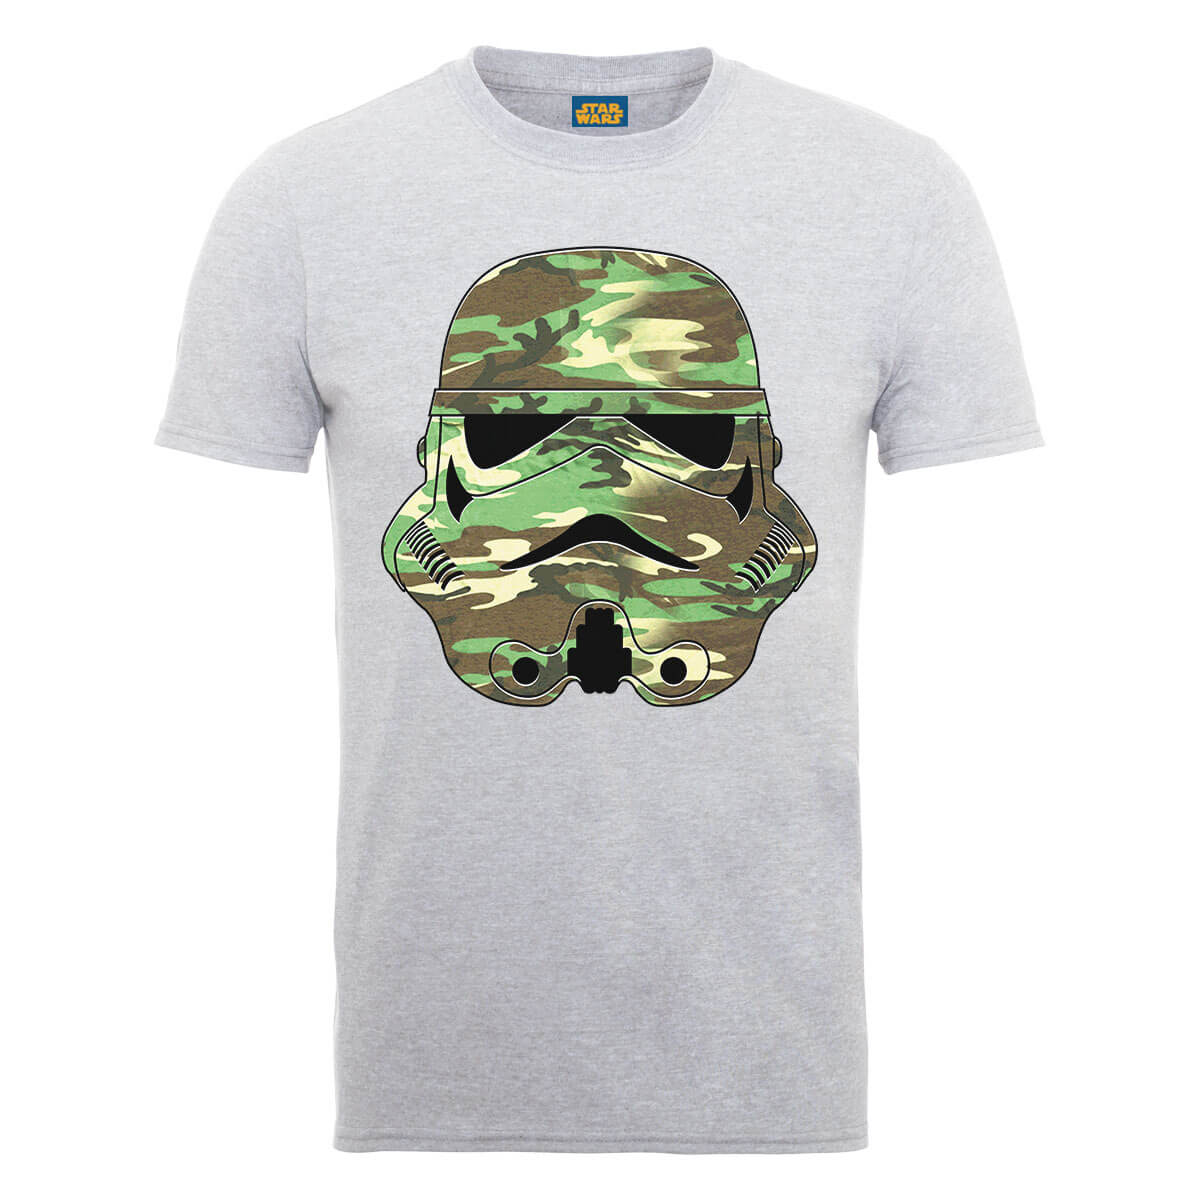 Star Wars Stormtrooper Camo T-Shirt - Grey